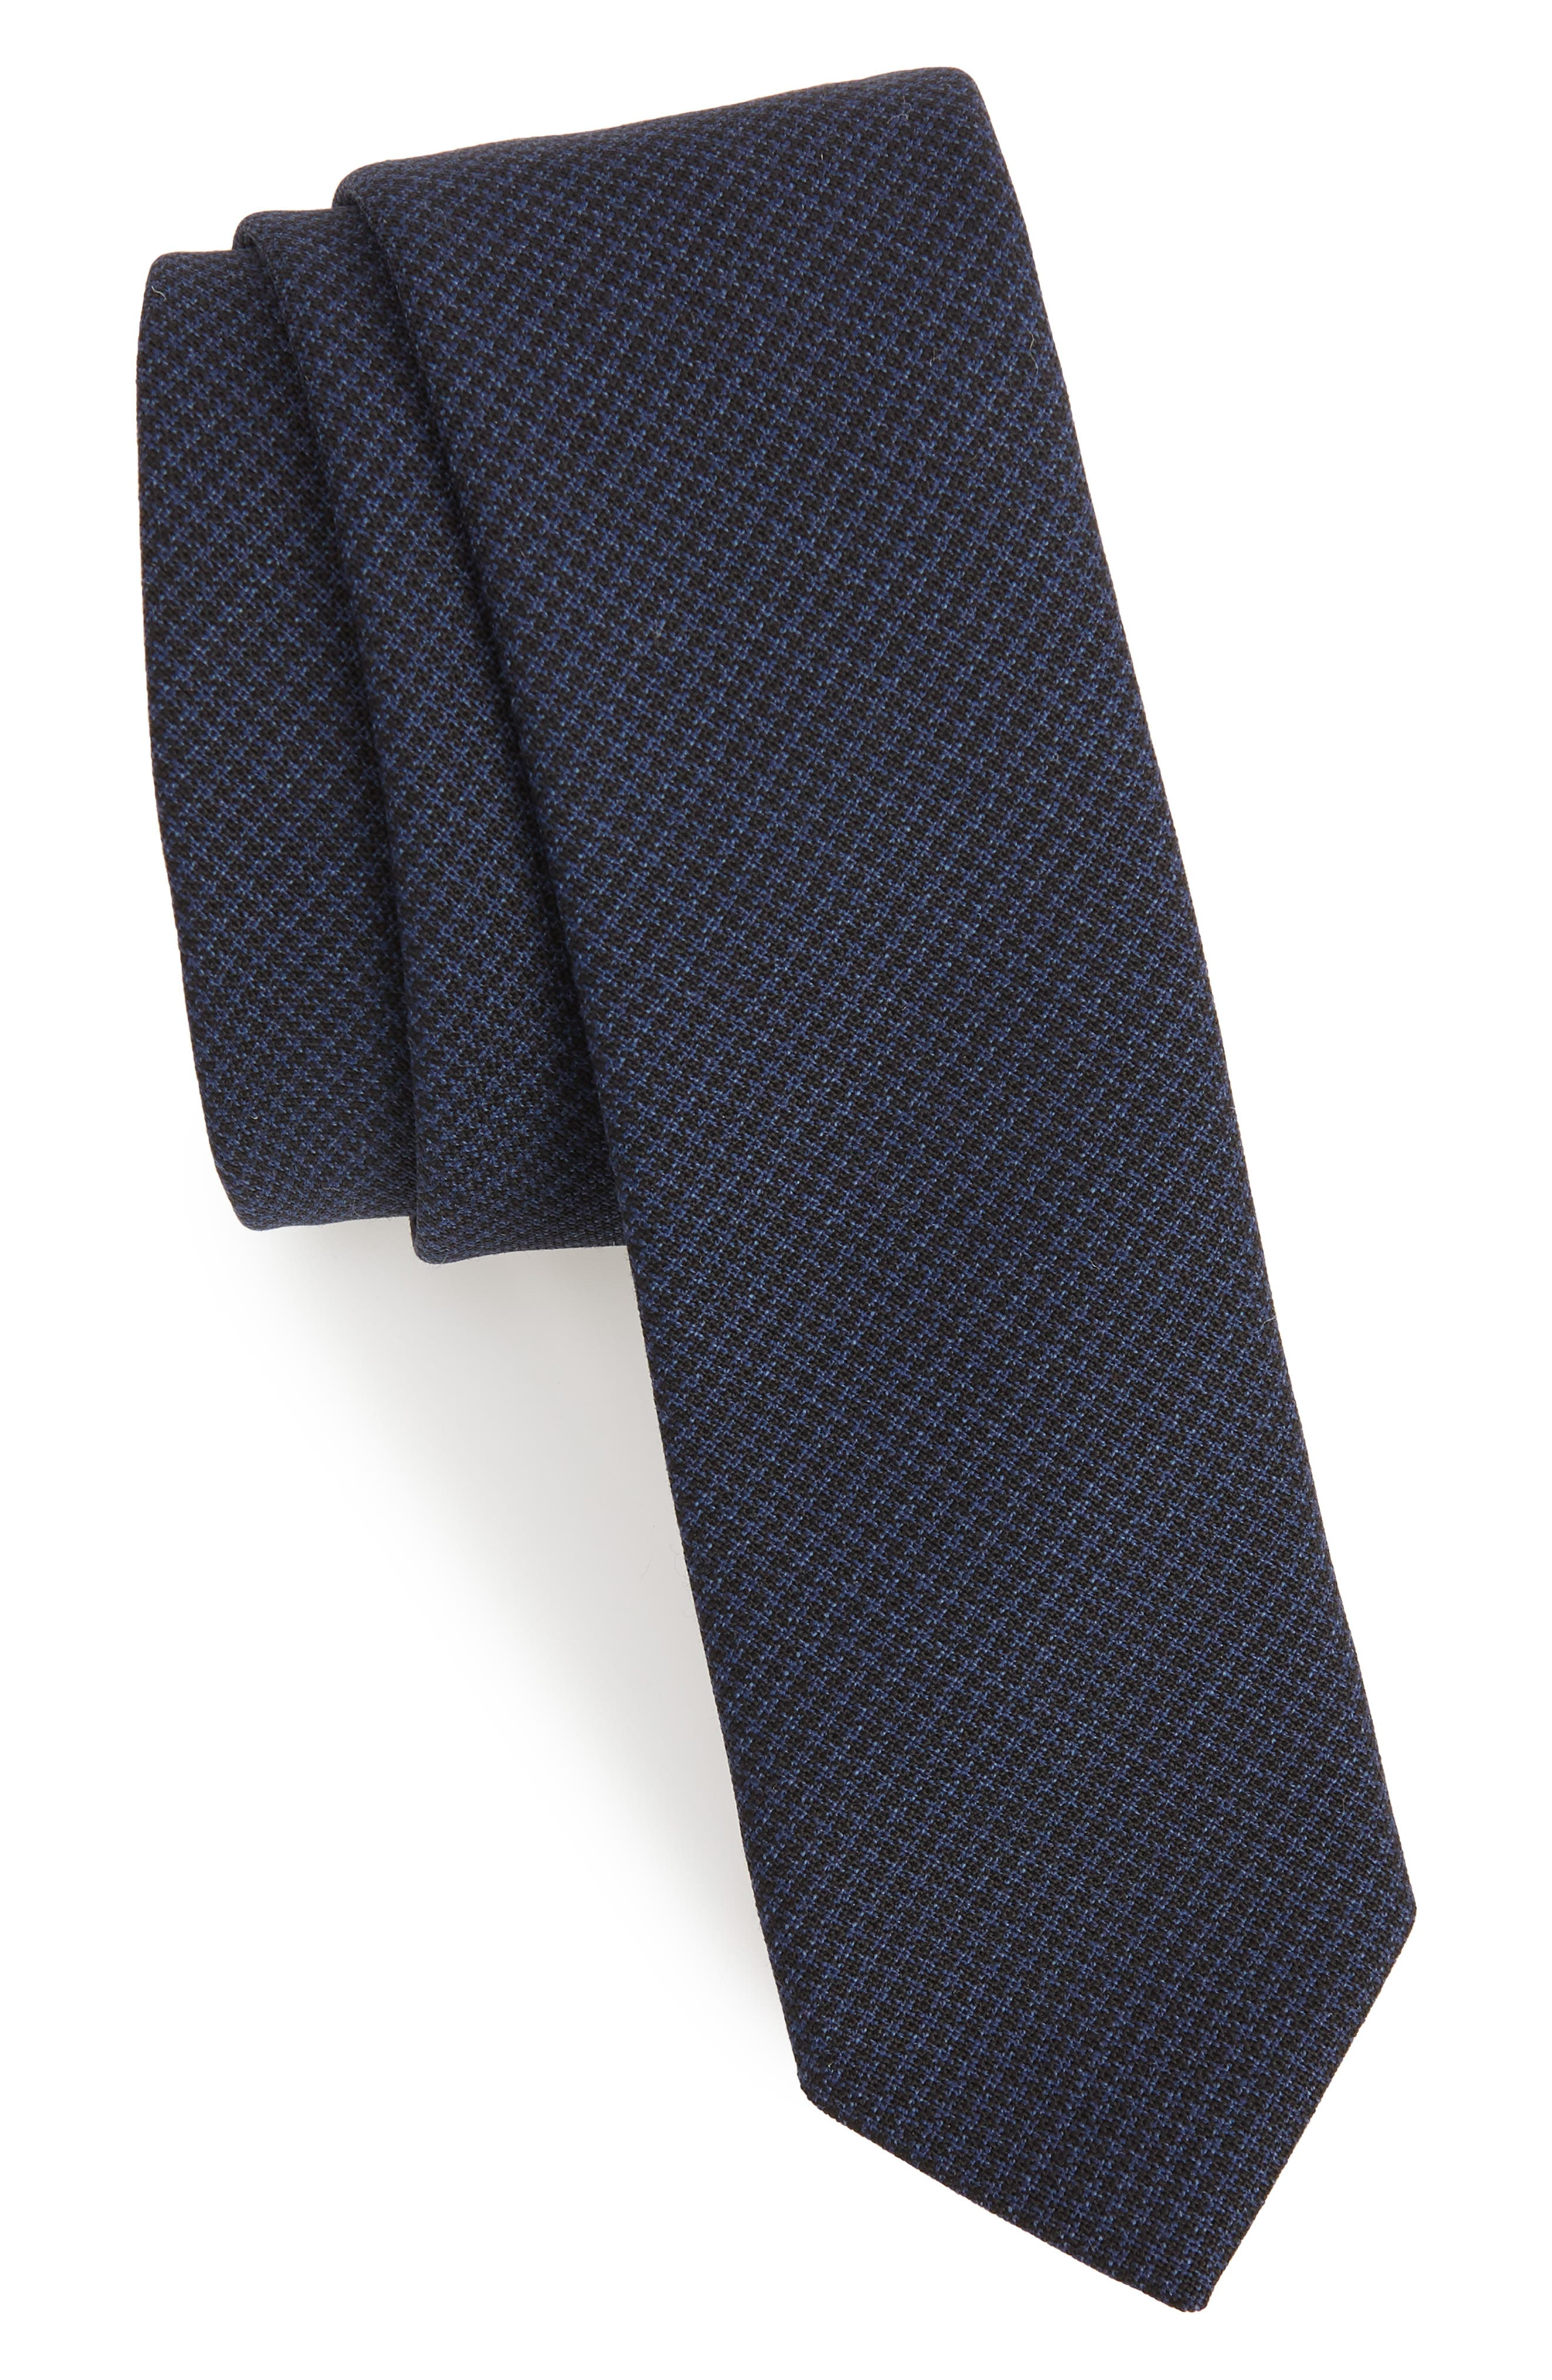 Houndstooth Wool Skinny Tie,                             Main thumbnail 1, color,                             Navy Blue